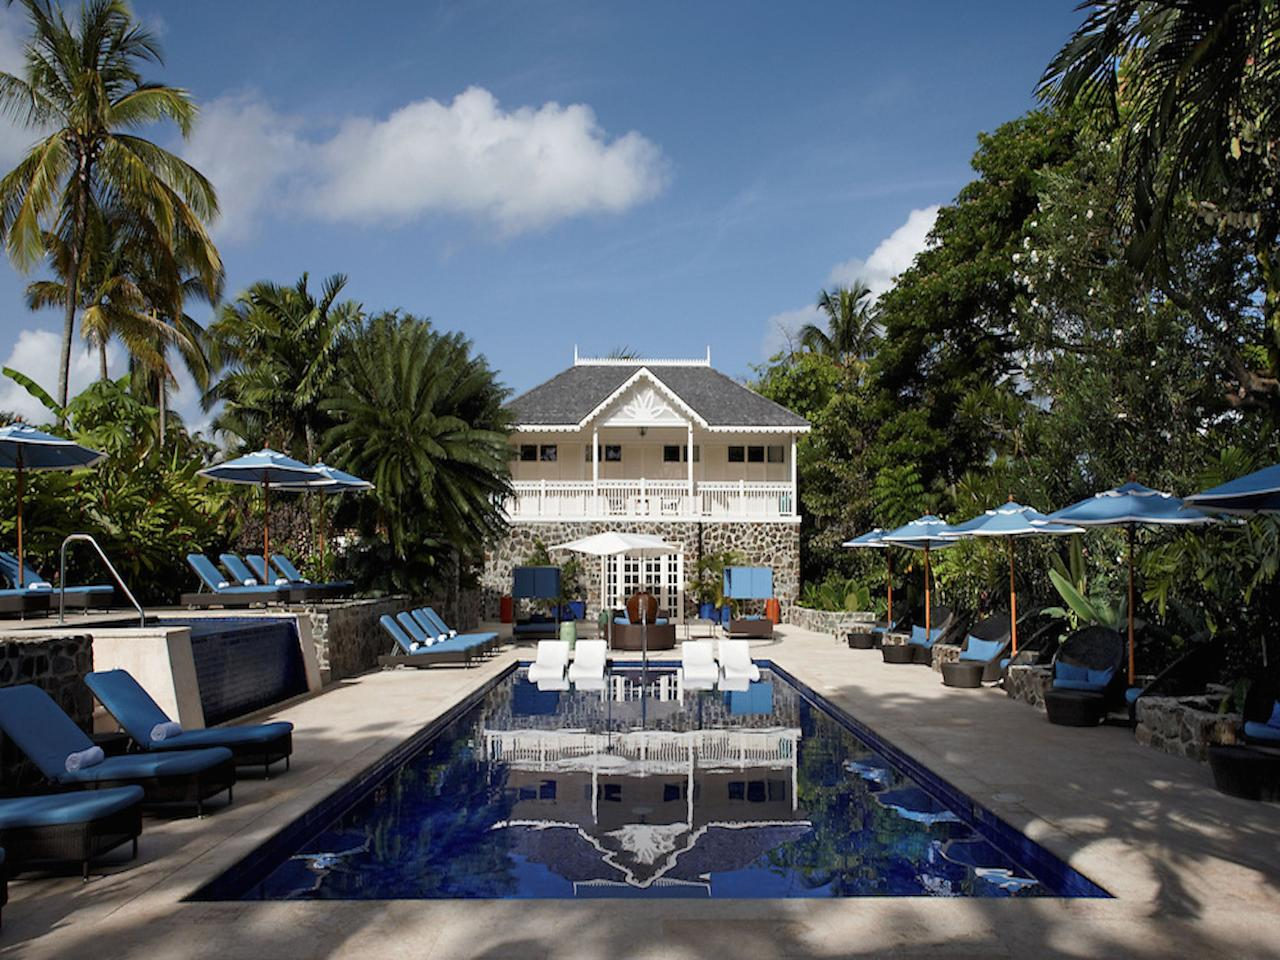 """As a resort for <a href=""""https://www.cntraveler.com/gallery/the-30-most-romantic-adventures?mbid=synd_yahoo_rss"""" target=""""_blank"""">couples</a>, St. Lucia's <a href=""""https://www.theromanticholiday.com/"""">Rendezvous Resort</a> values unplugged time above anything else. This beachfront all-inclusive feels less like a honeymoon resort and more like a place for not-so-newly weds to reconnect and practice a digital detox together with secluded pools, a lazy river with secret nooks to explore, and plenty of active wellness offerings. Yes, there's yoga and a newly renovated spa. But there are also harder to find classes like on-the-beach Tai Chi and Calypso dance lessons. If you've come to the Caribbean for water sports, Rendezvous offers complimentary SCUBA boat dives and Hobie Cat catamarans for sunset sailing."""